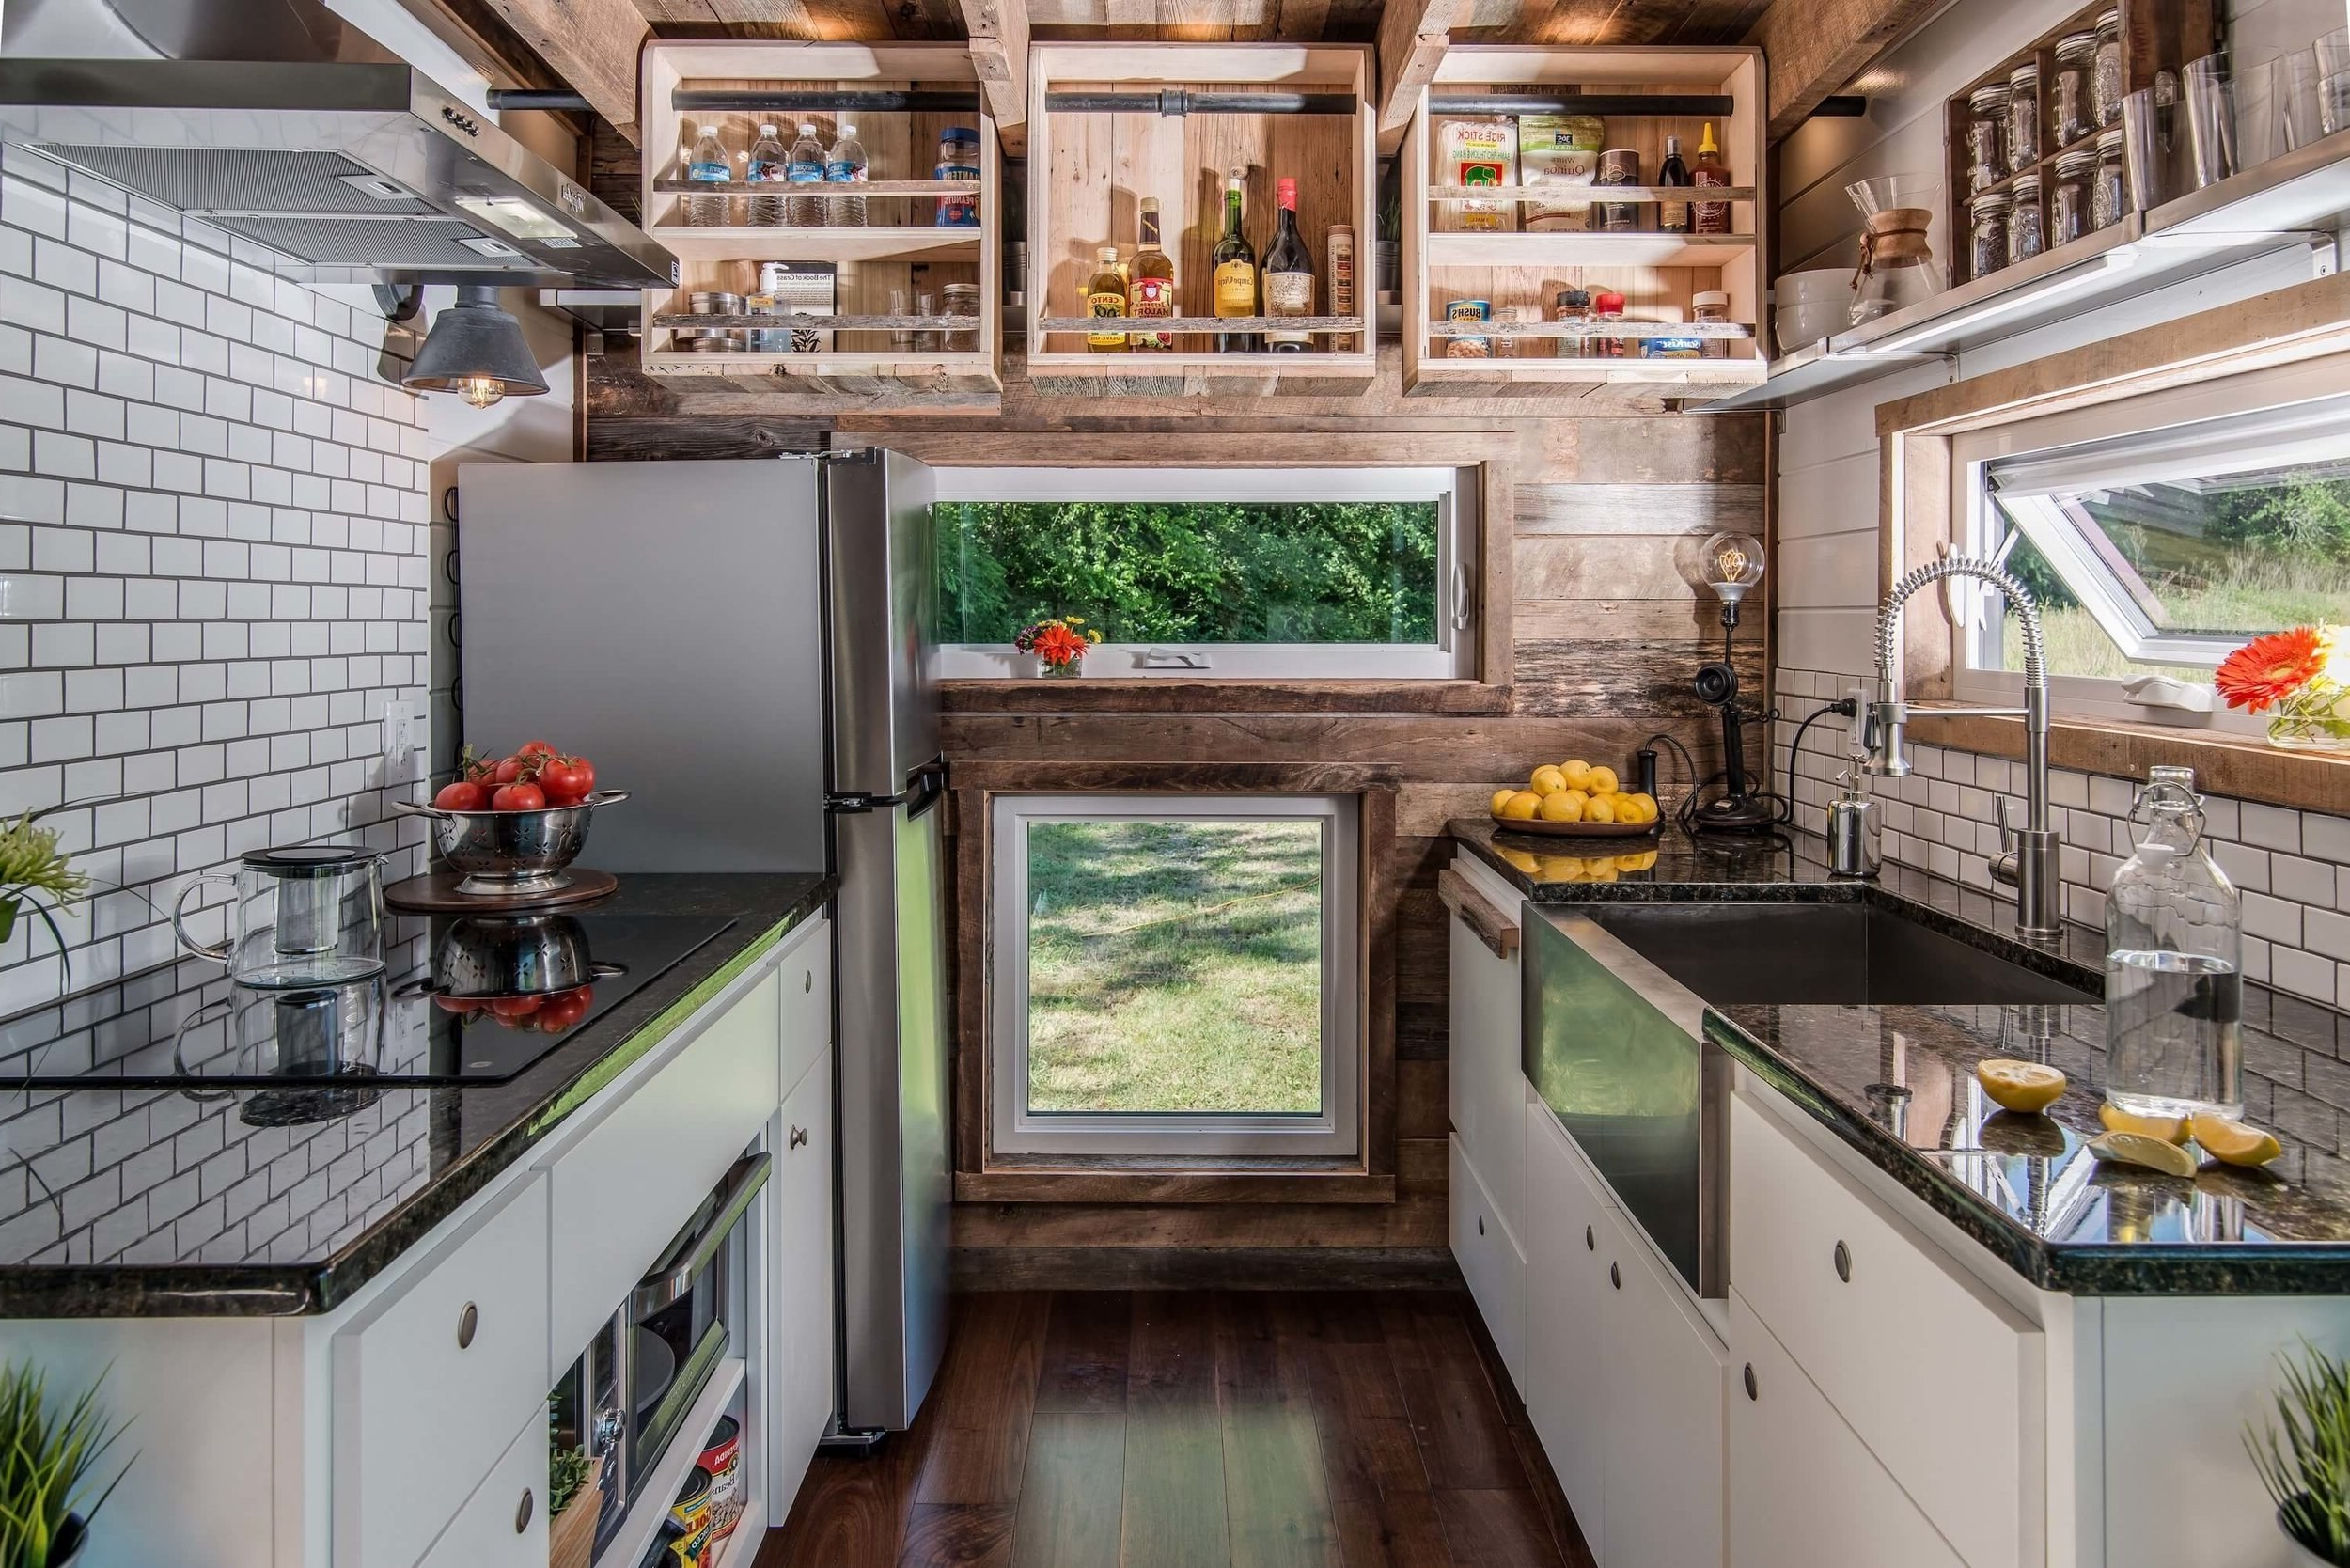 hight resolution of here s what it s like cooking in a tiny house